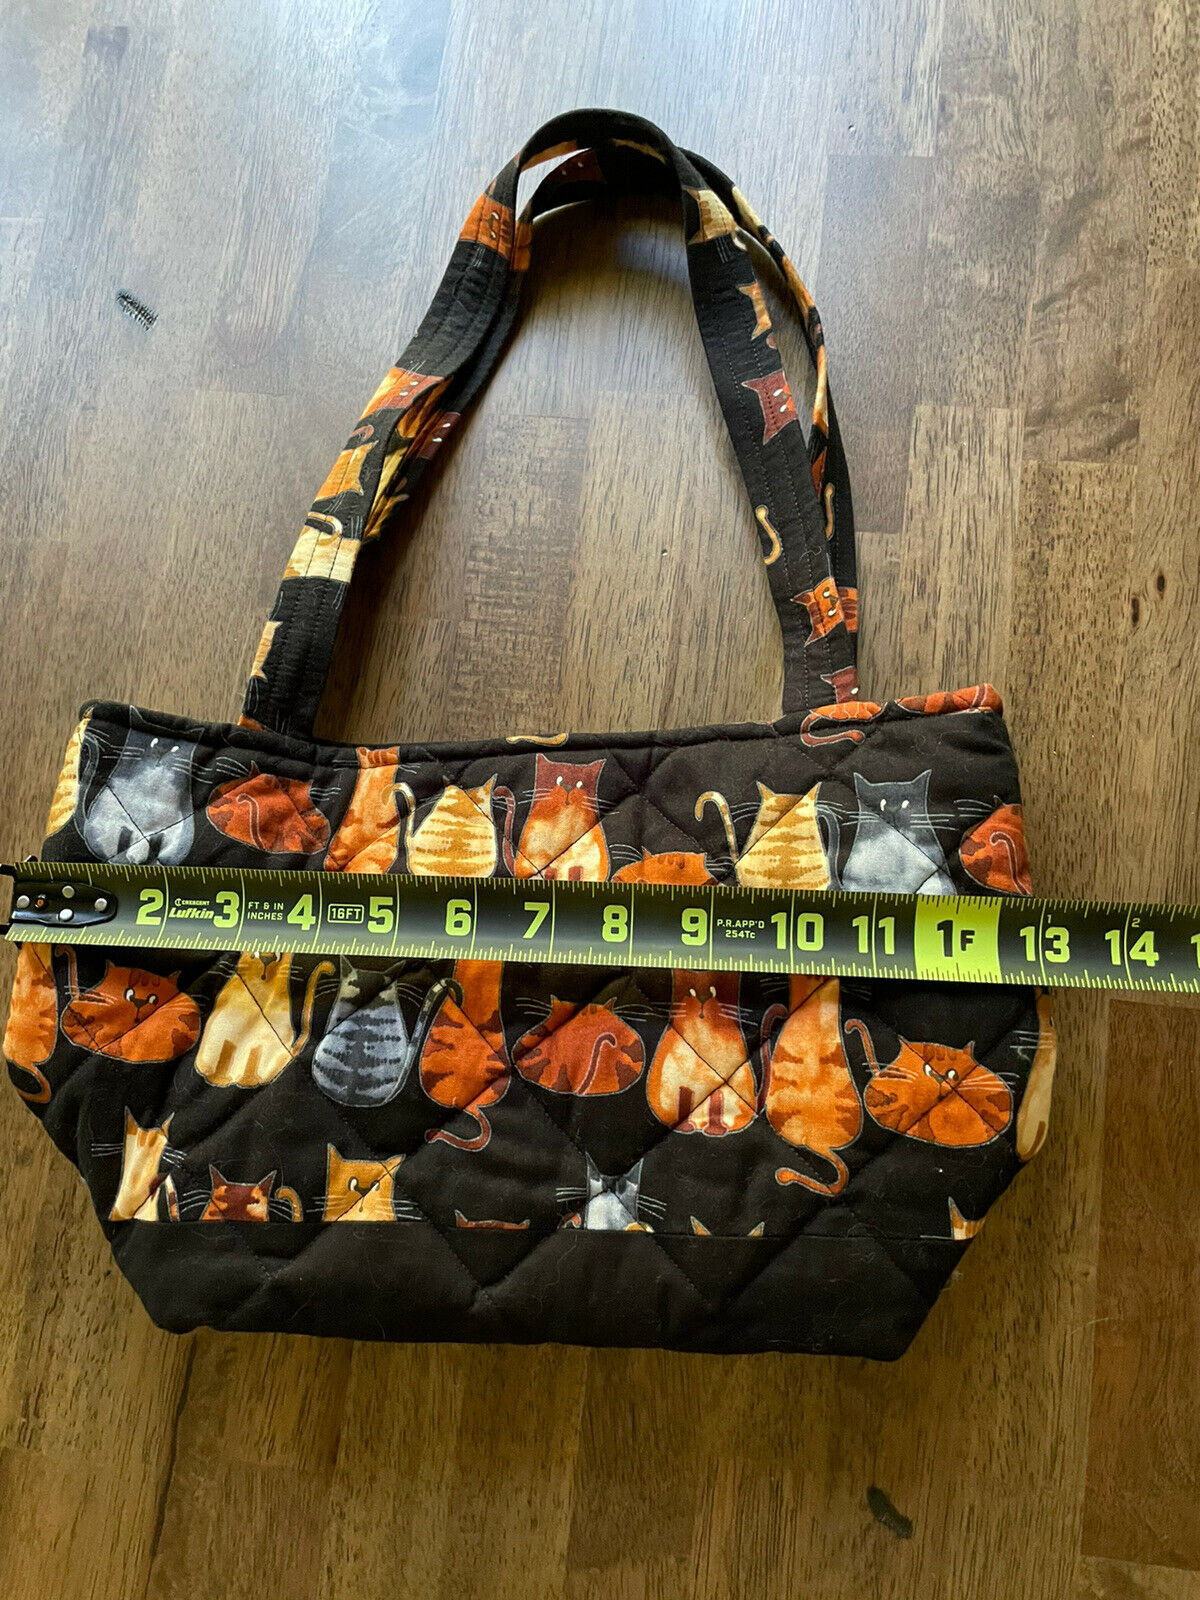 Kitten Cat Quilted Tote Purse Bag - image 6